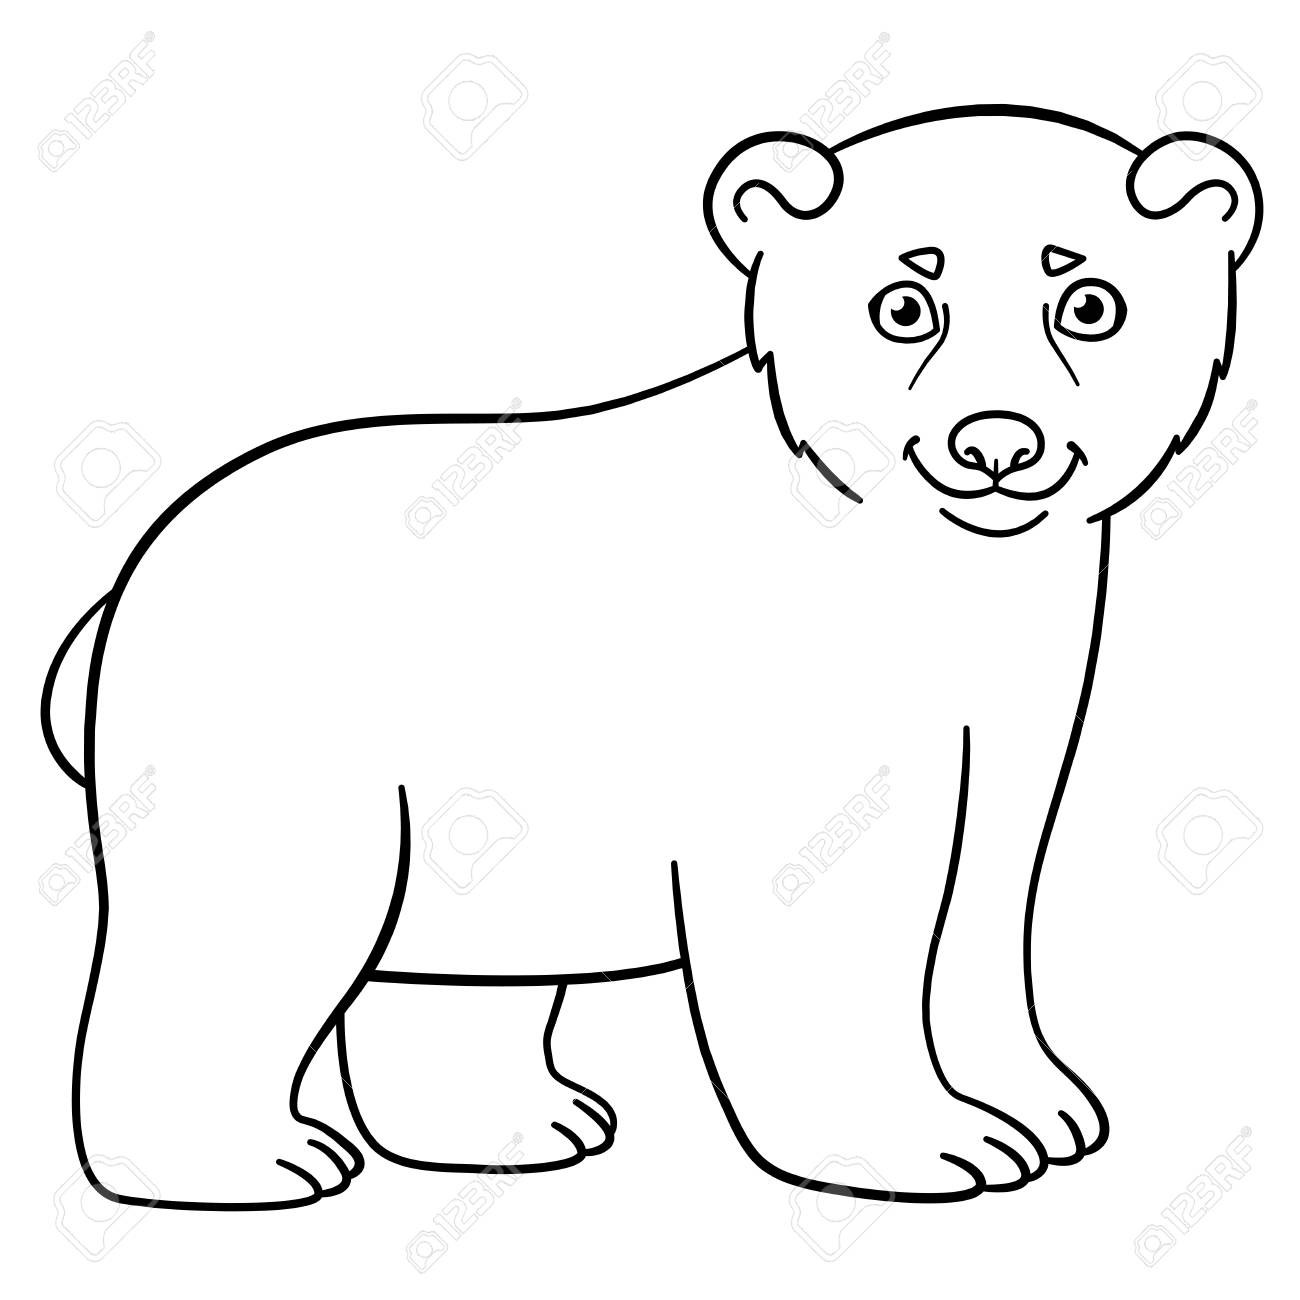 Coloring Pages. Little Cute Baby Polar Bear Smiles. Royalty Free ...